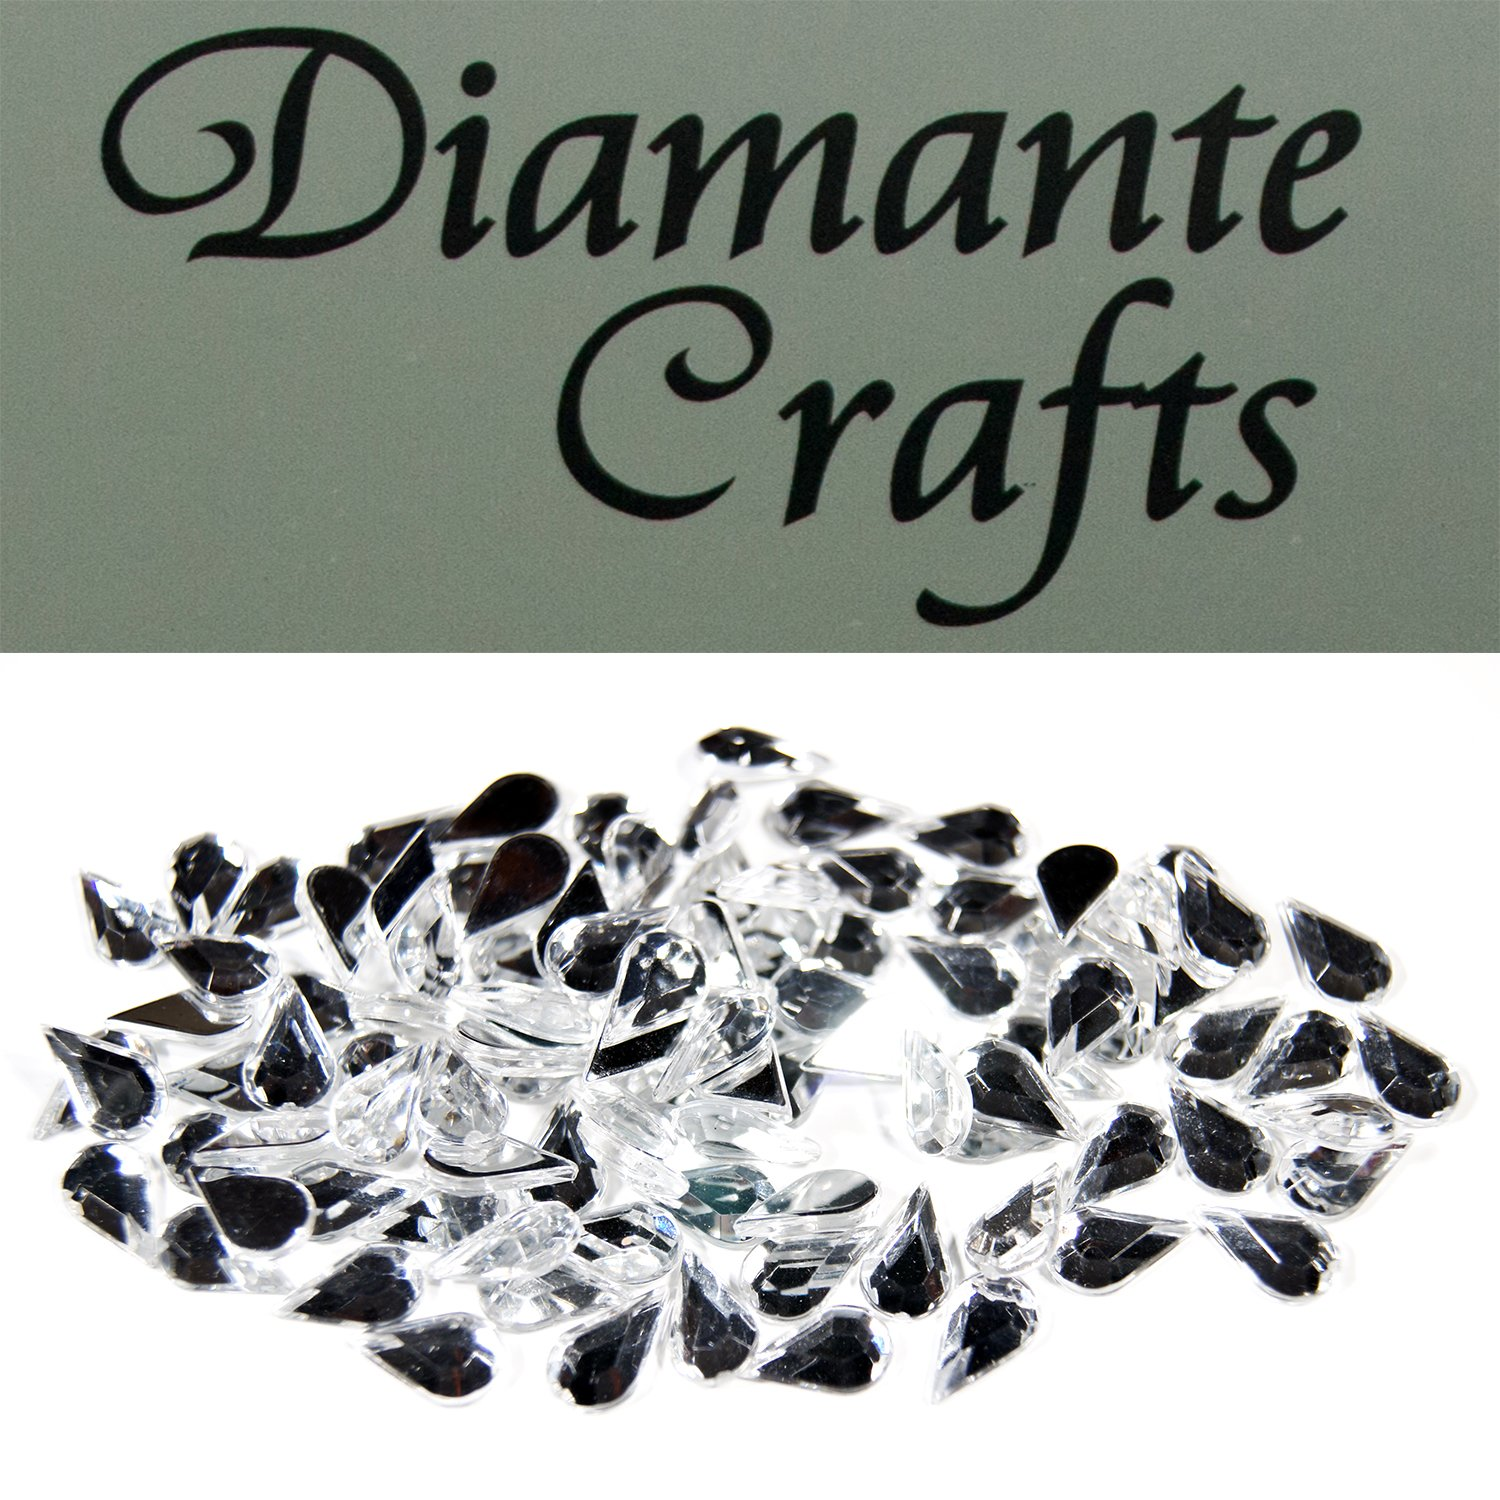 150 x 10mm Clear Teardrops Diamante Loose Flat Back Rhinestone Vajazzle Body Gems - created exclusively for Diamante Crafts